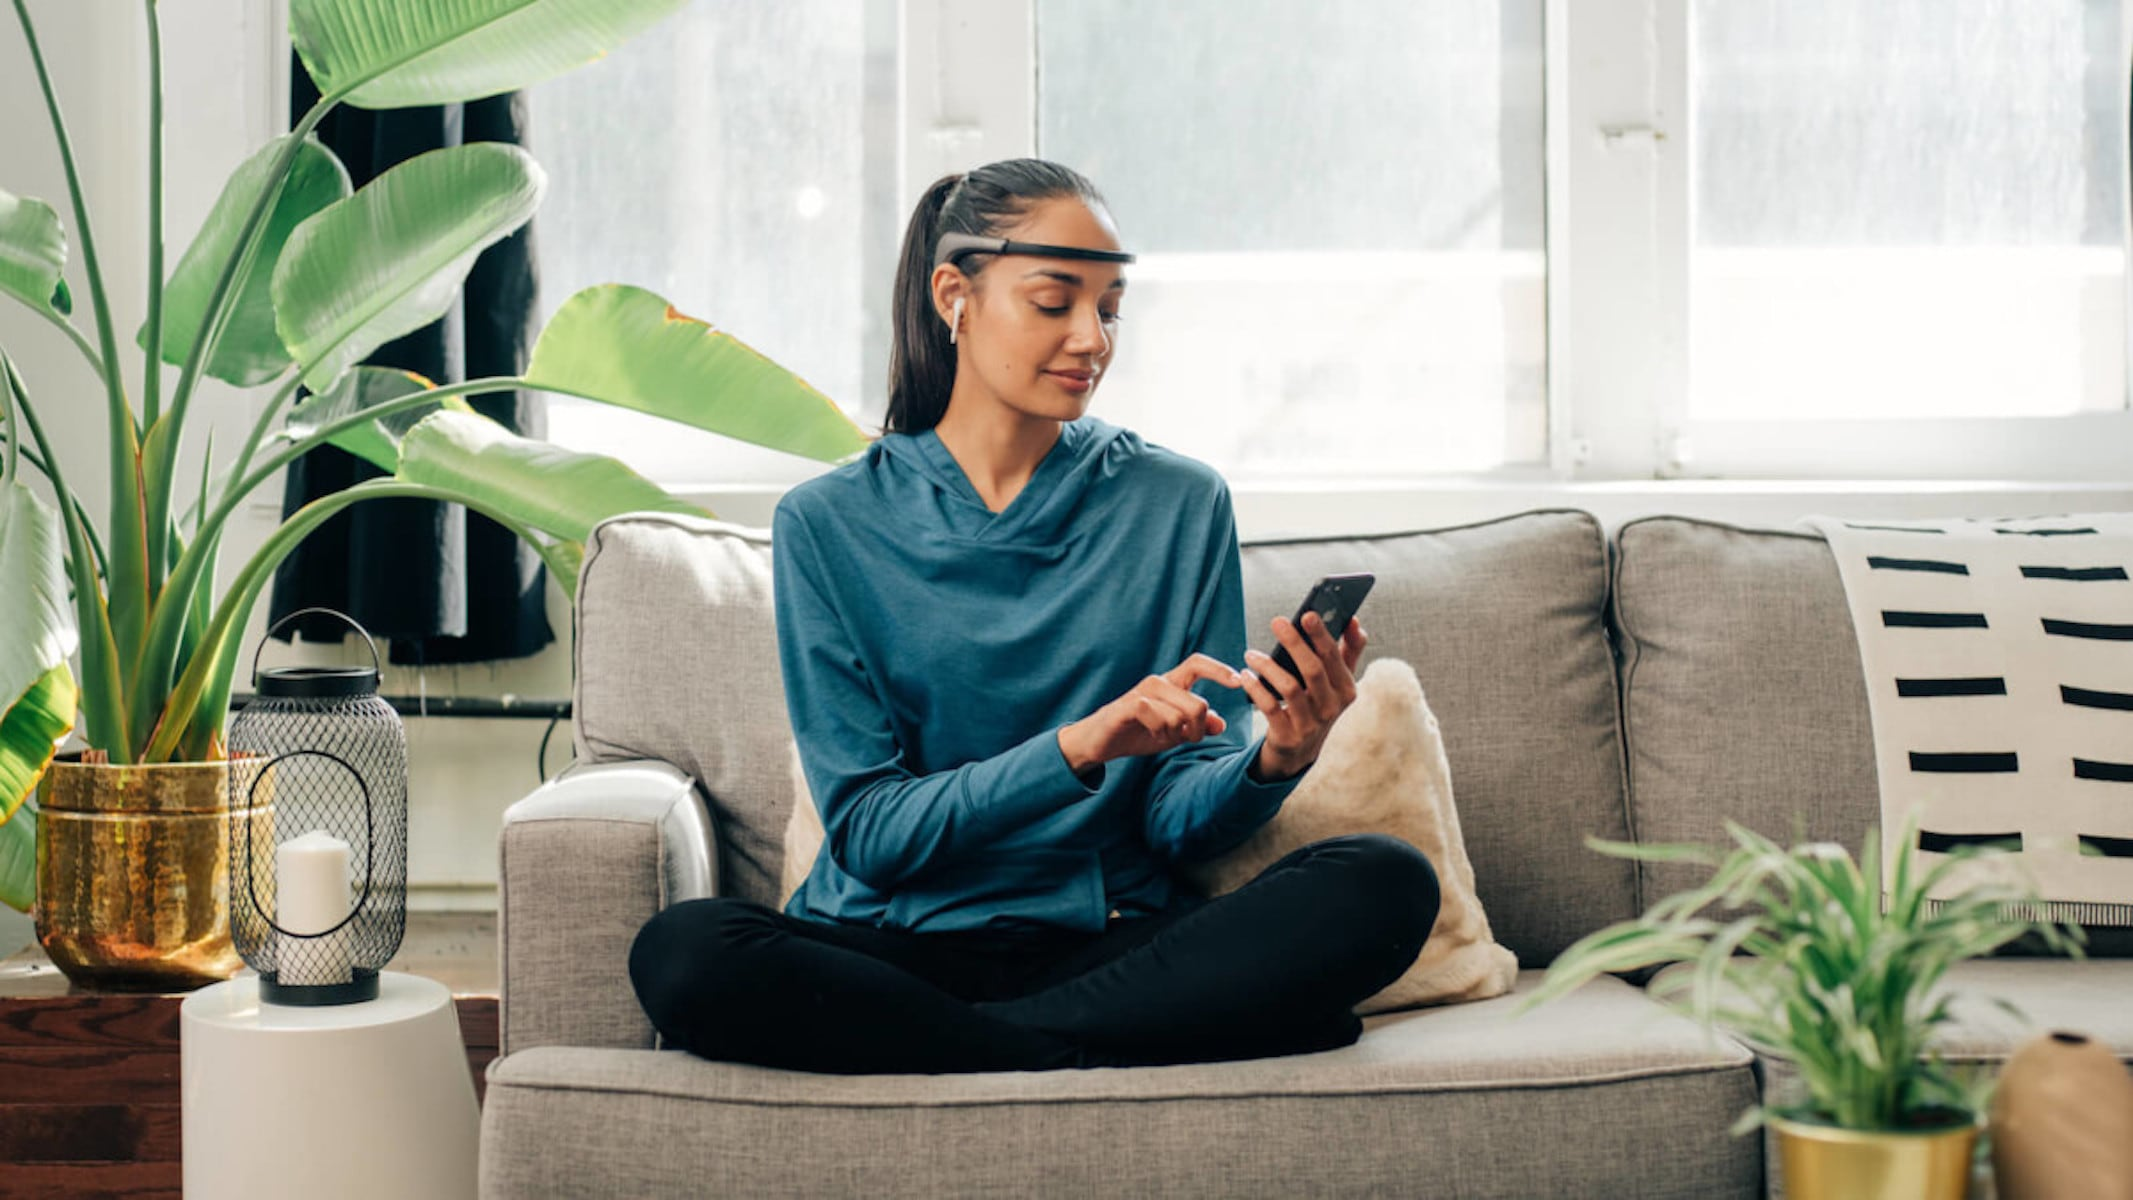 Find your zen with these smart mindfulness and meditation gadgets